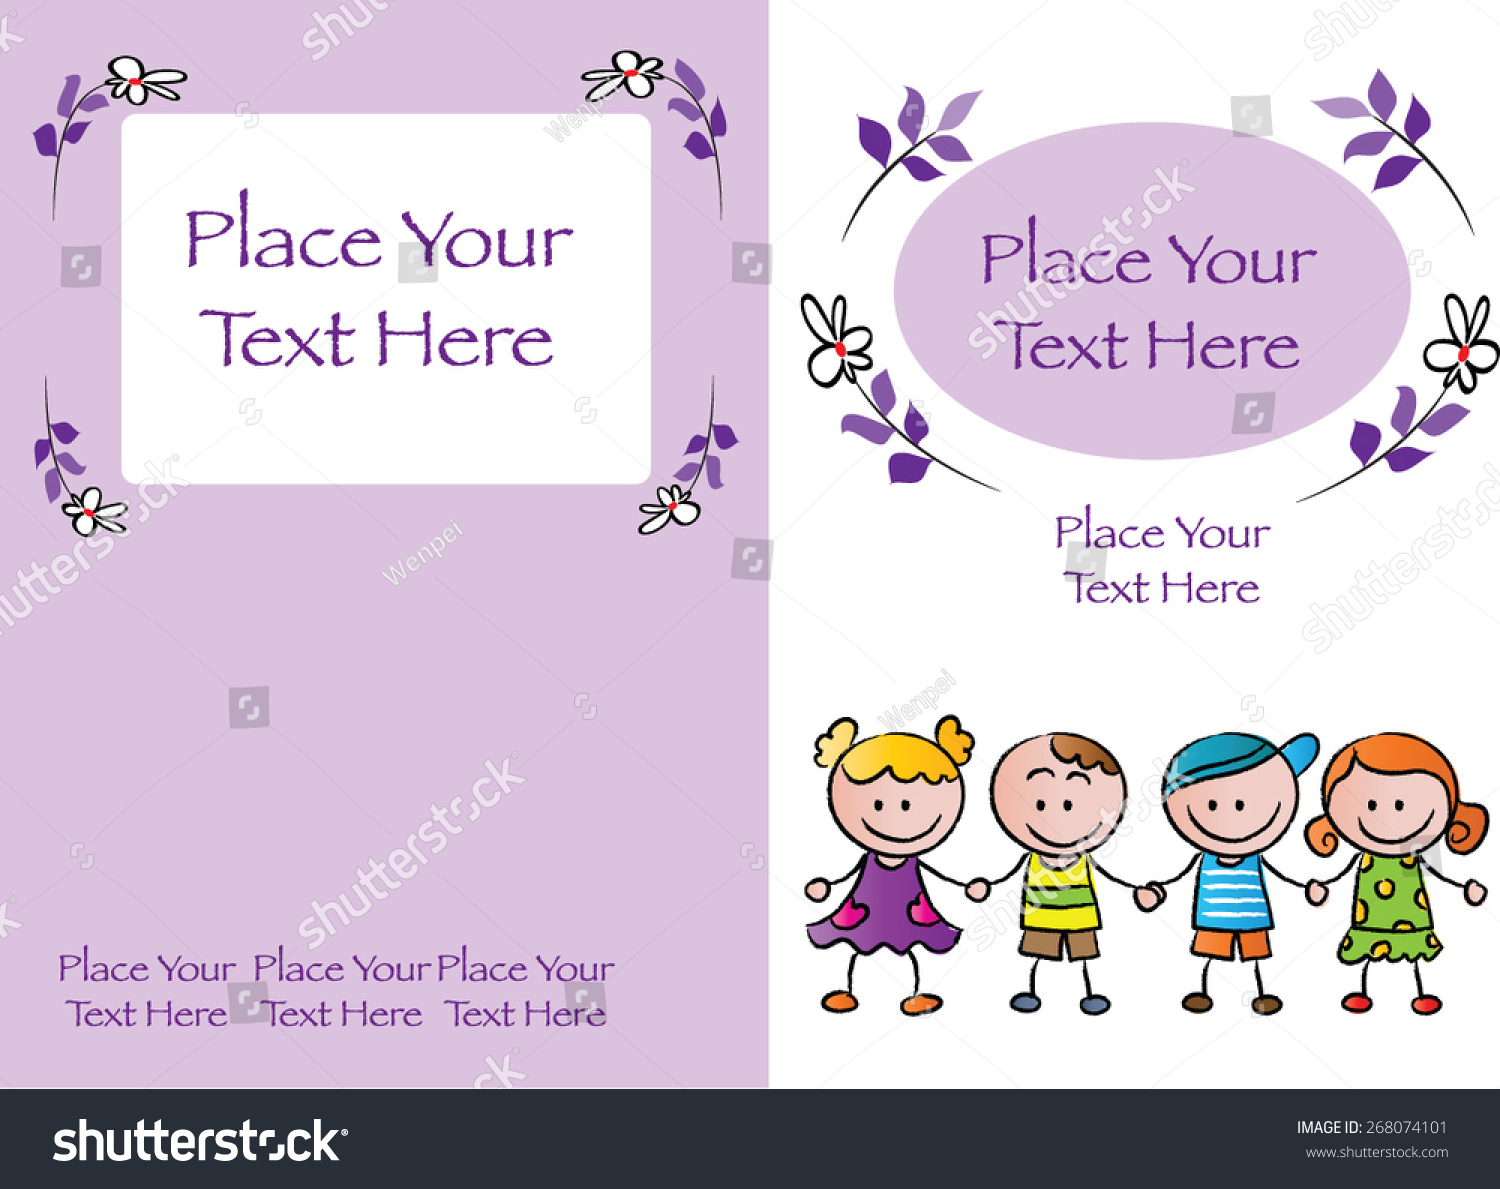 Kids Book Cover Background : Kids book cover design purple background stock vector